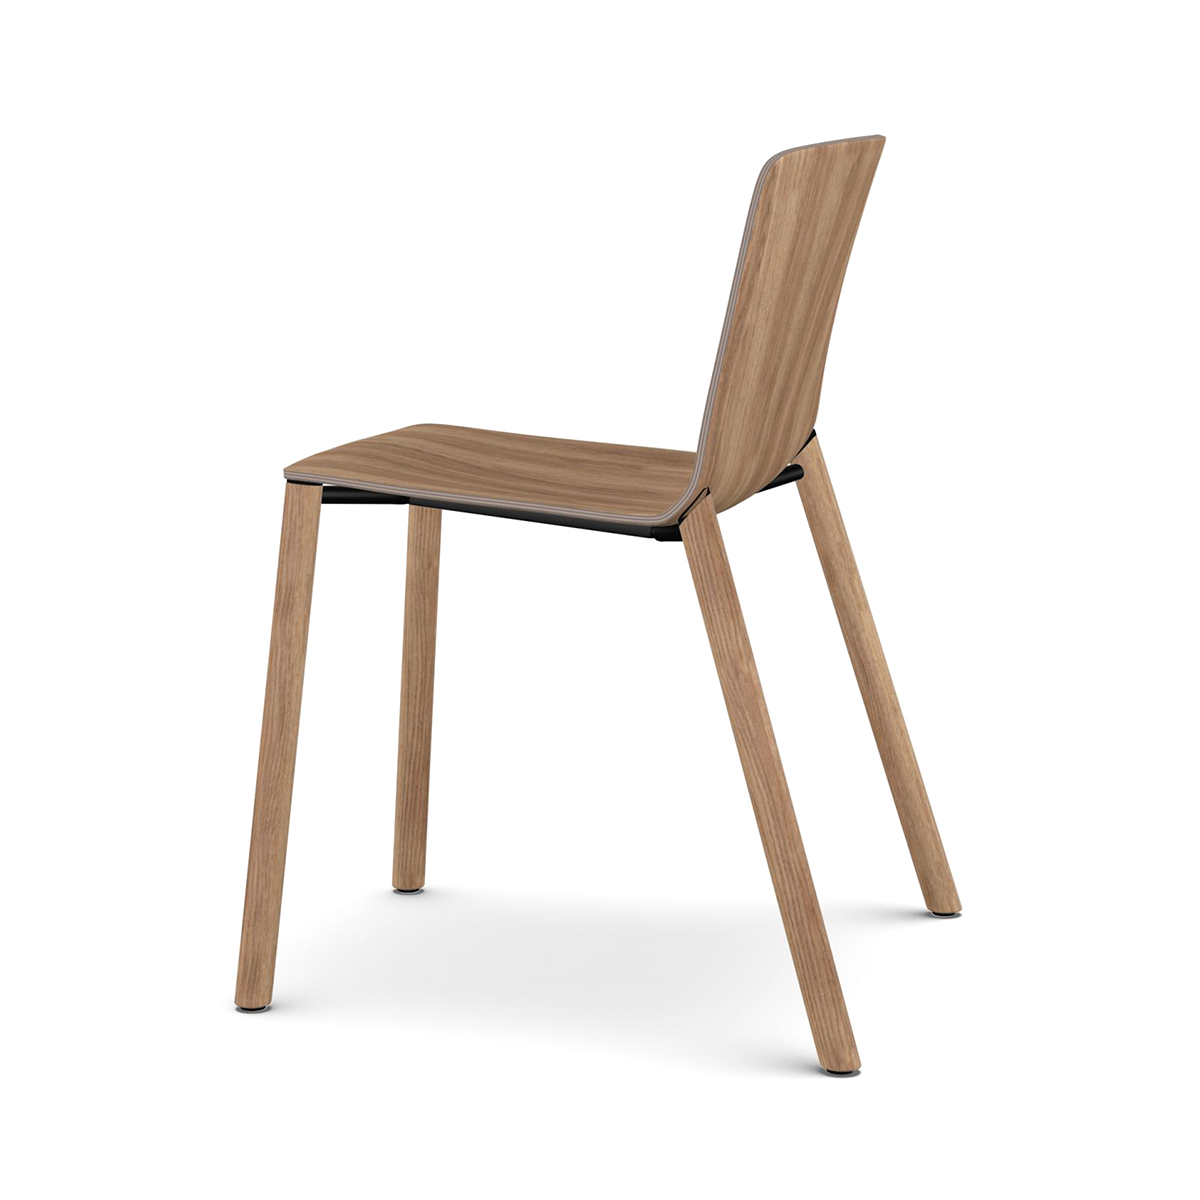 Kristalia Rama Four Wood Legs Chair 拉瑪 木質 單椅